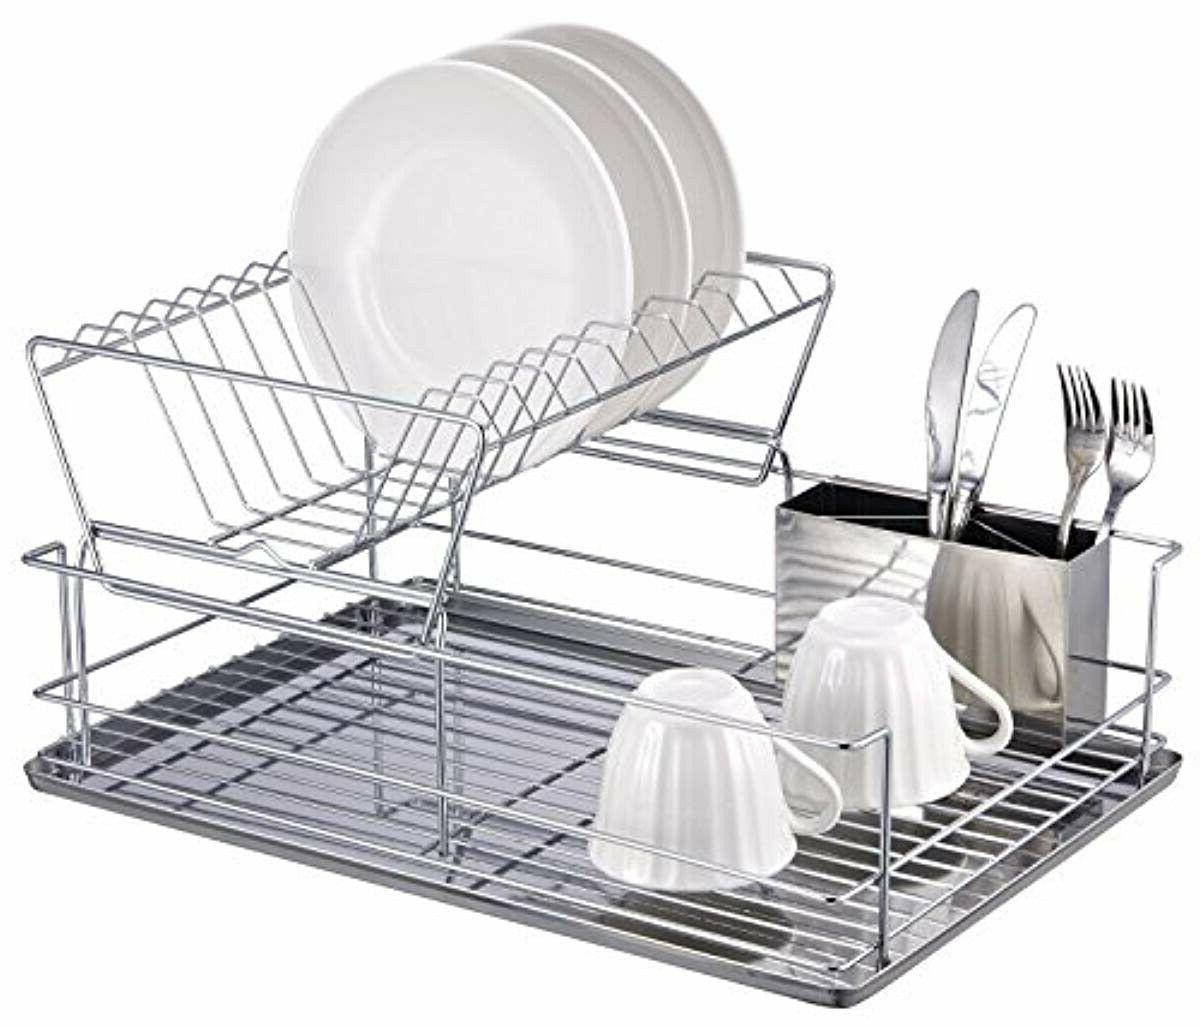 Sweet Dish Drainer Drying Tier Set Board